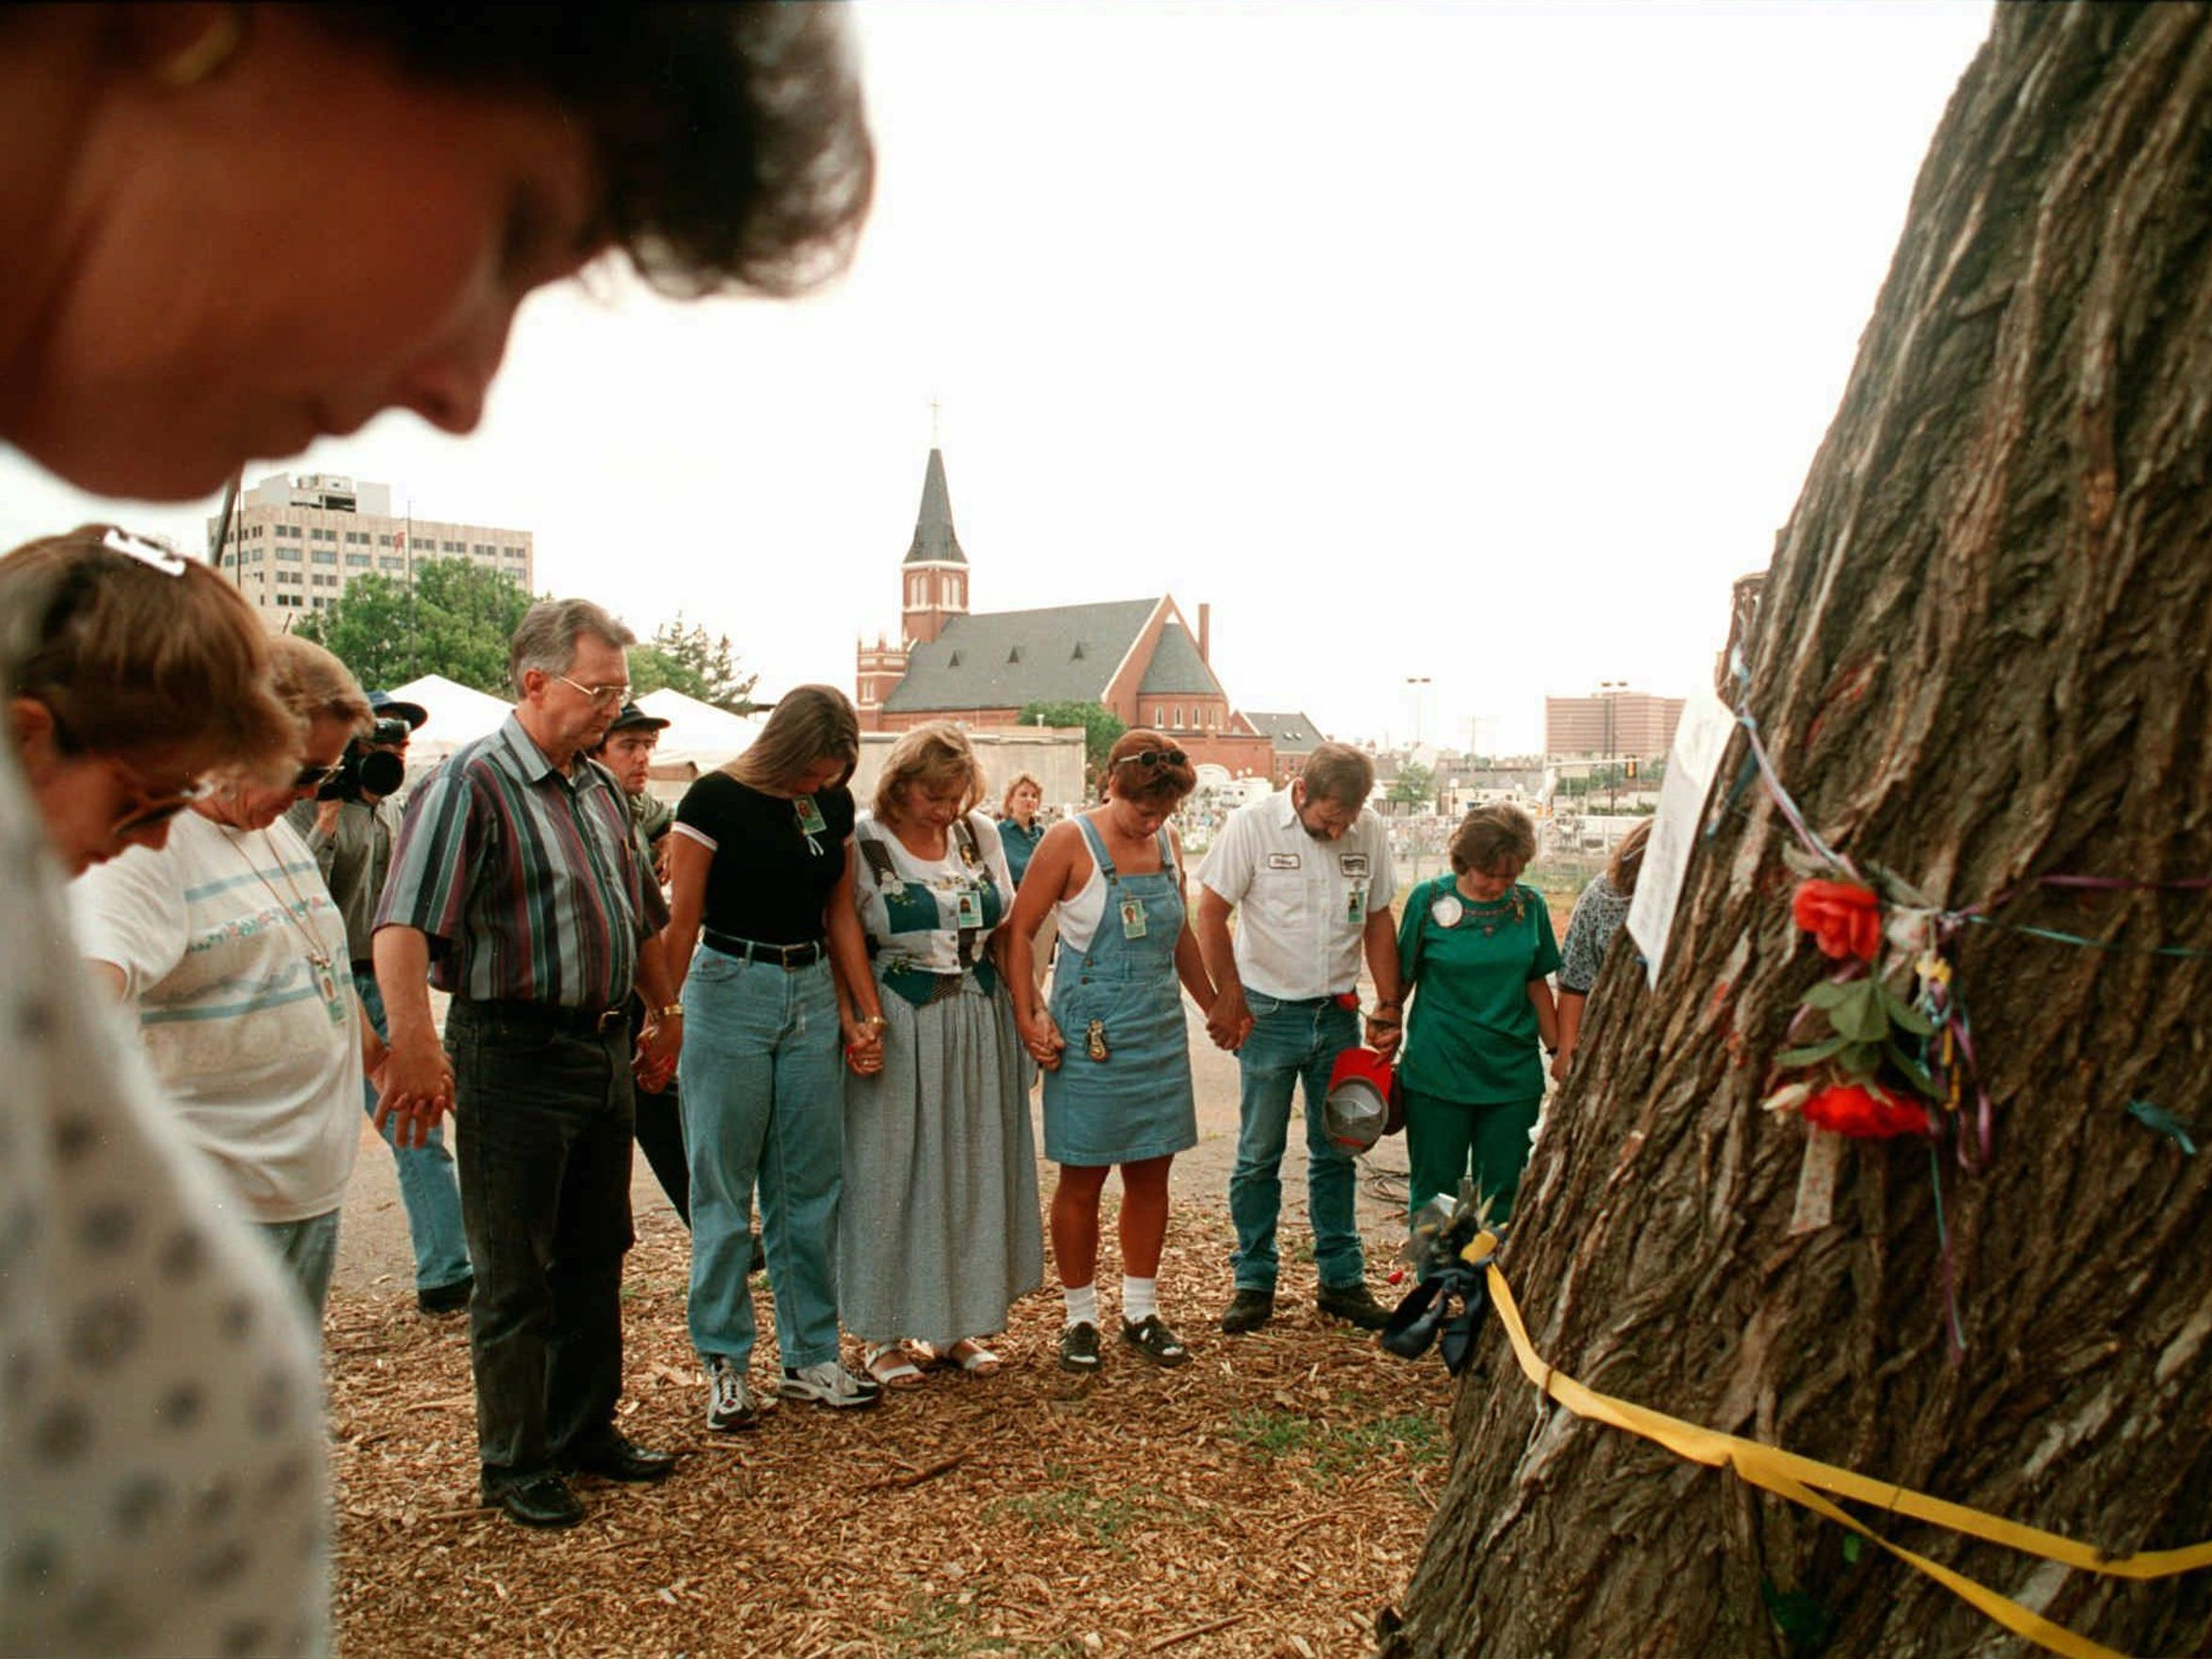 Oklahoma City bombing survivors and family members of those killed in the April 19, 1995, bombing hold hands as they form a circle around the survivor's tree after hearing the guilty verdict in the  Timothy McVeigh bombing trial on June 2, 1997.